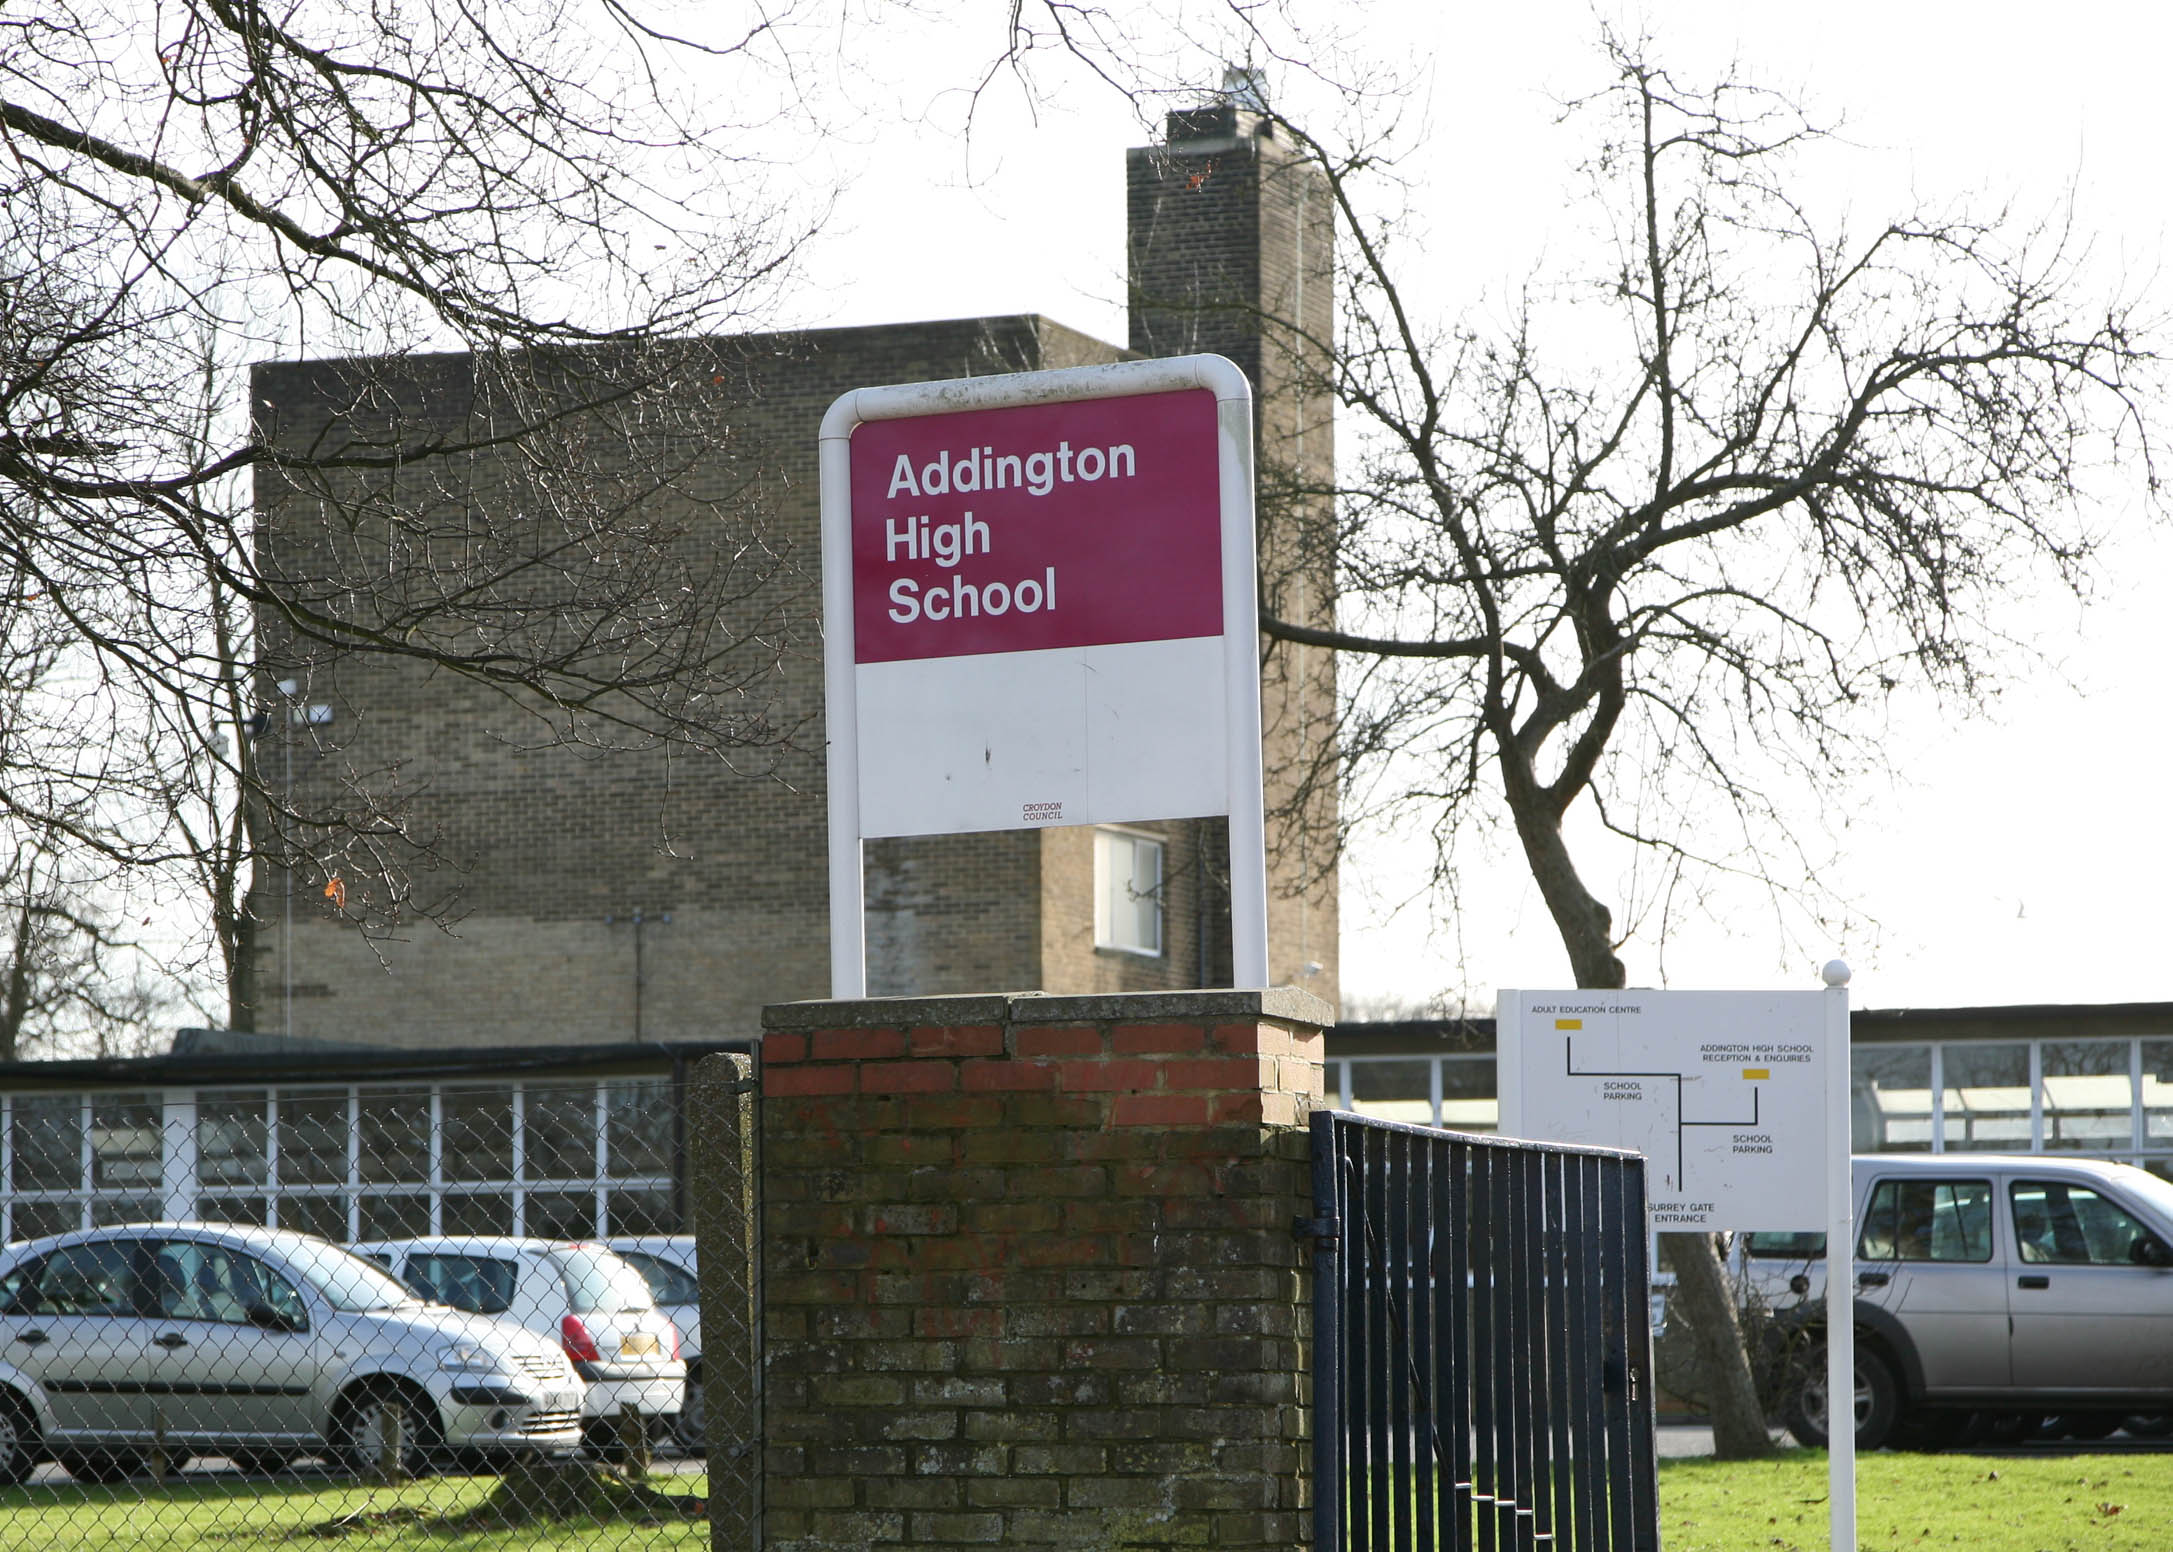 Addington High School is one of those rated inadequate by Ofsted